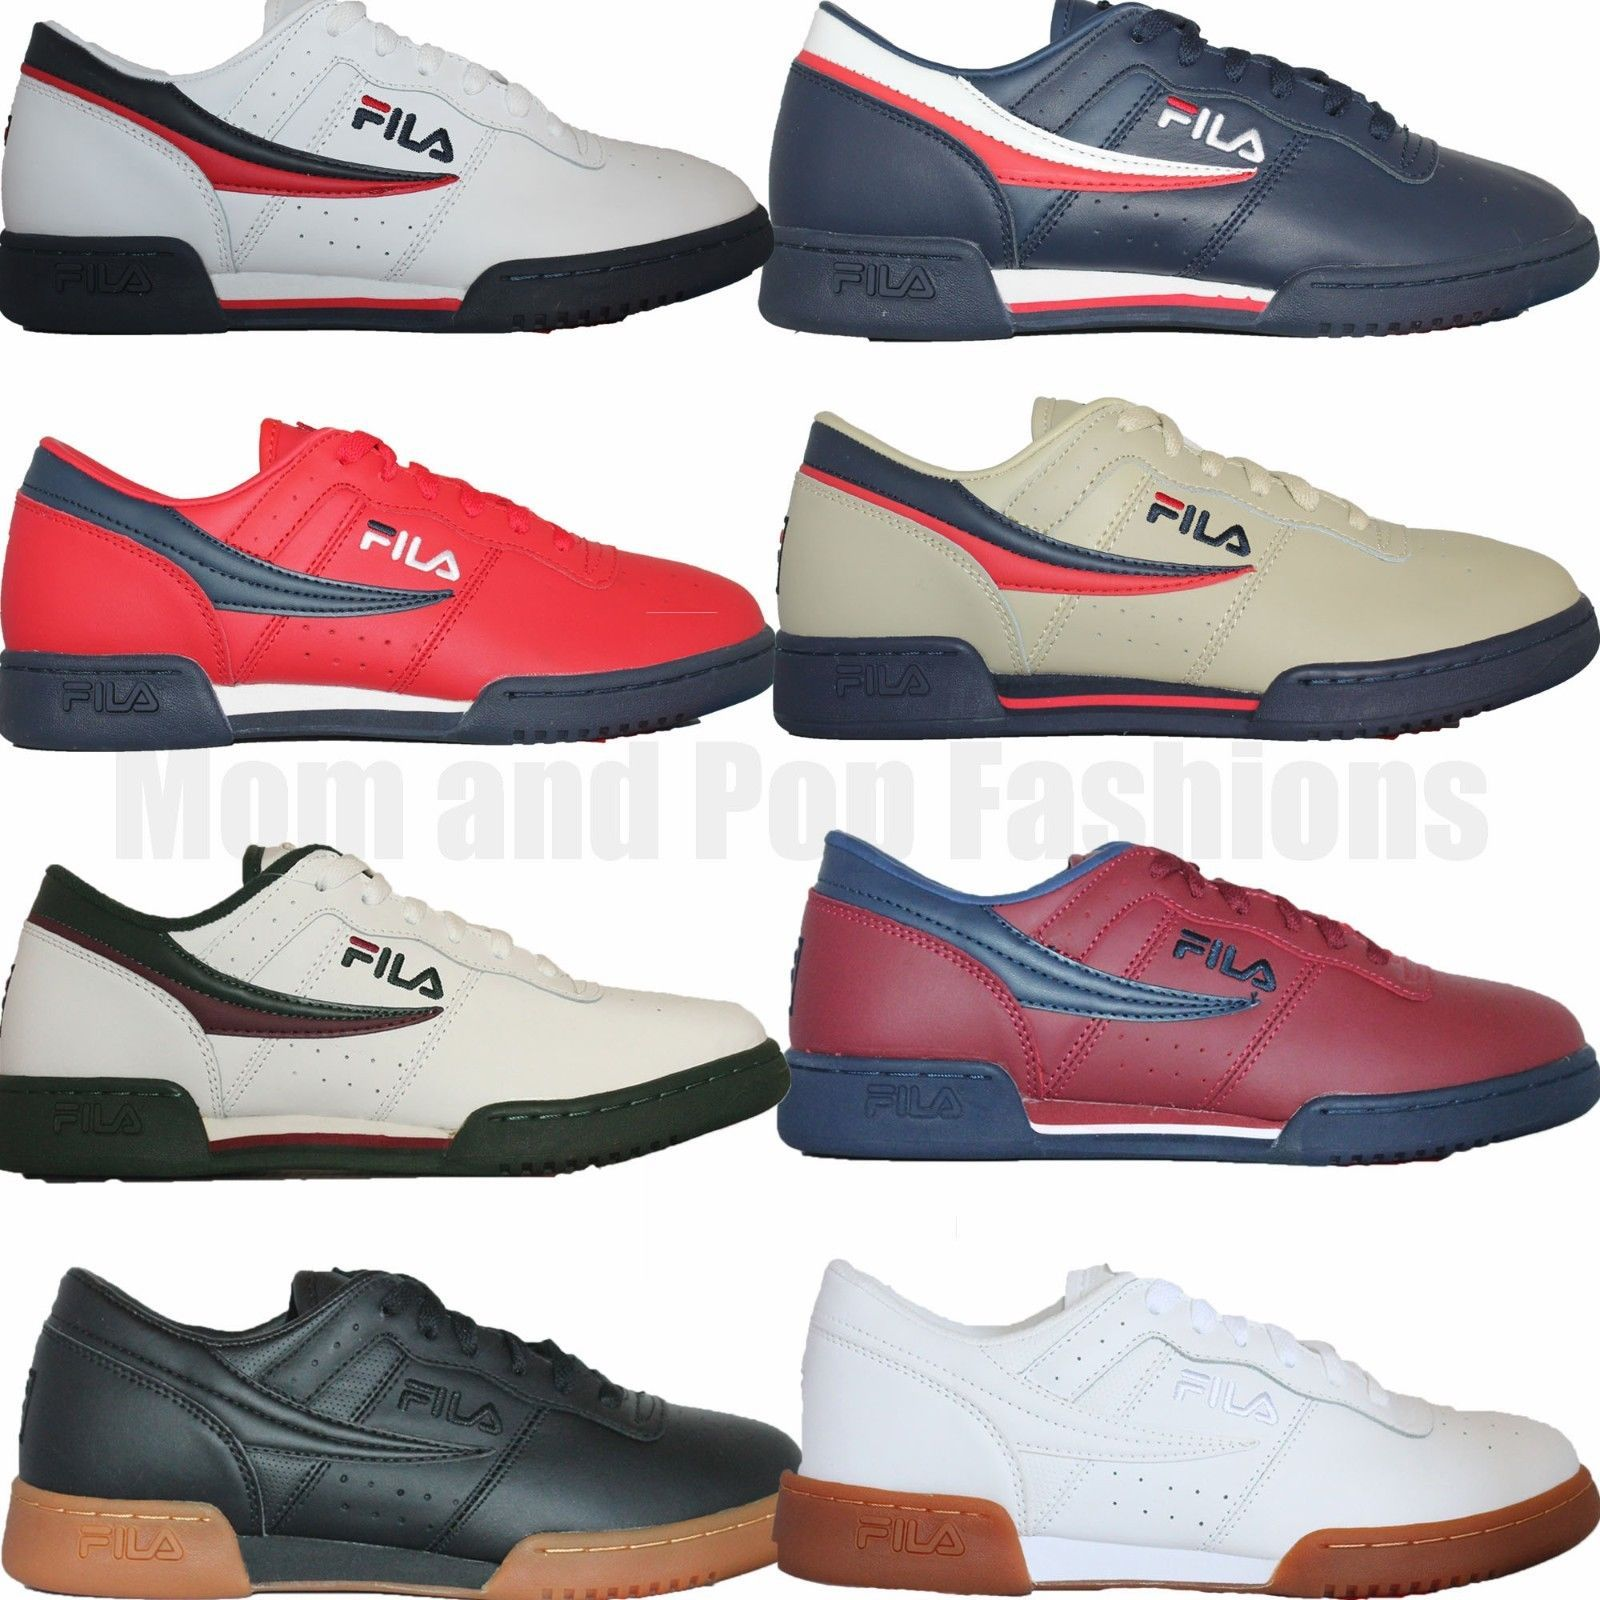 4c3532f58b66 Casual 24087  Mens Fila Original Fitness Classic Retro Casual Athletic Shoes  White Navy Red -  BUY IT NOW ONLY   49.9 on eBay!